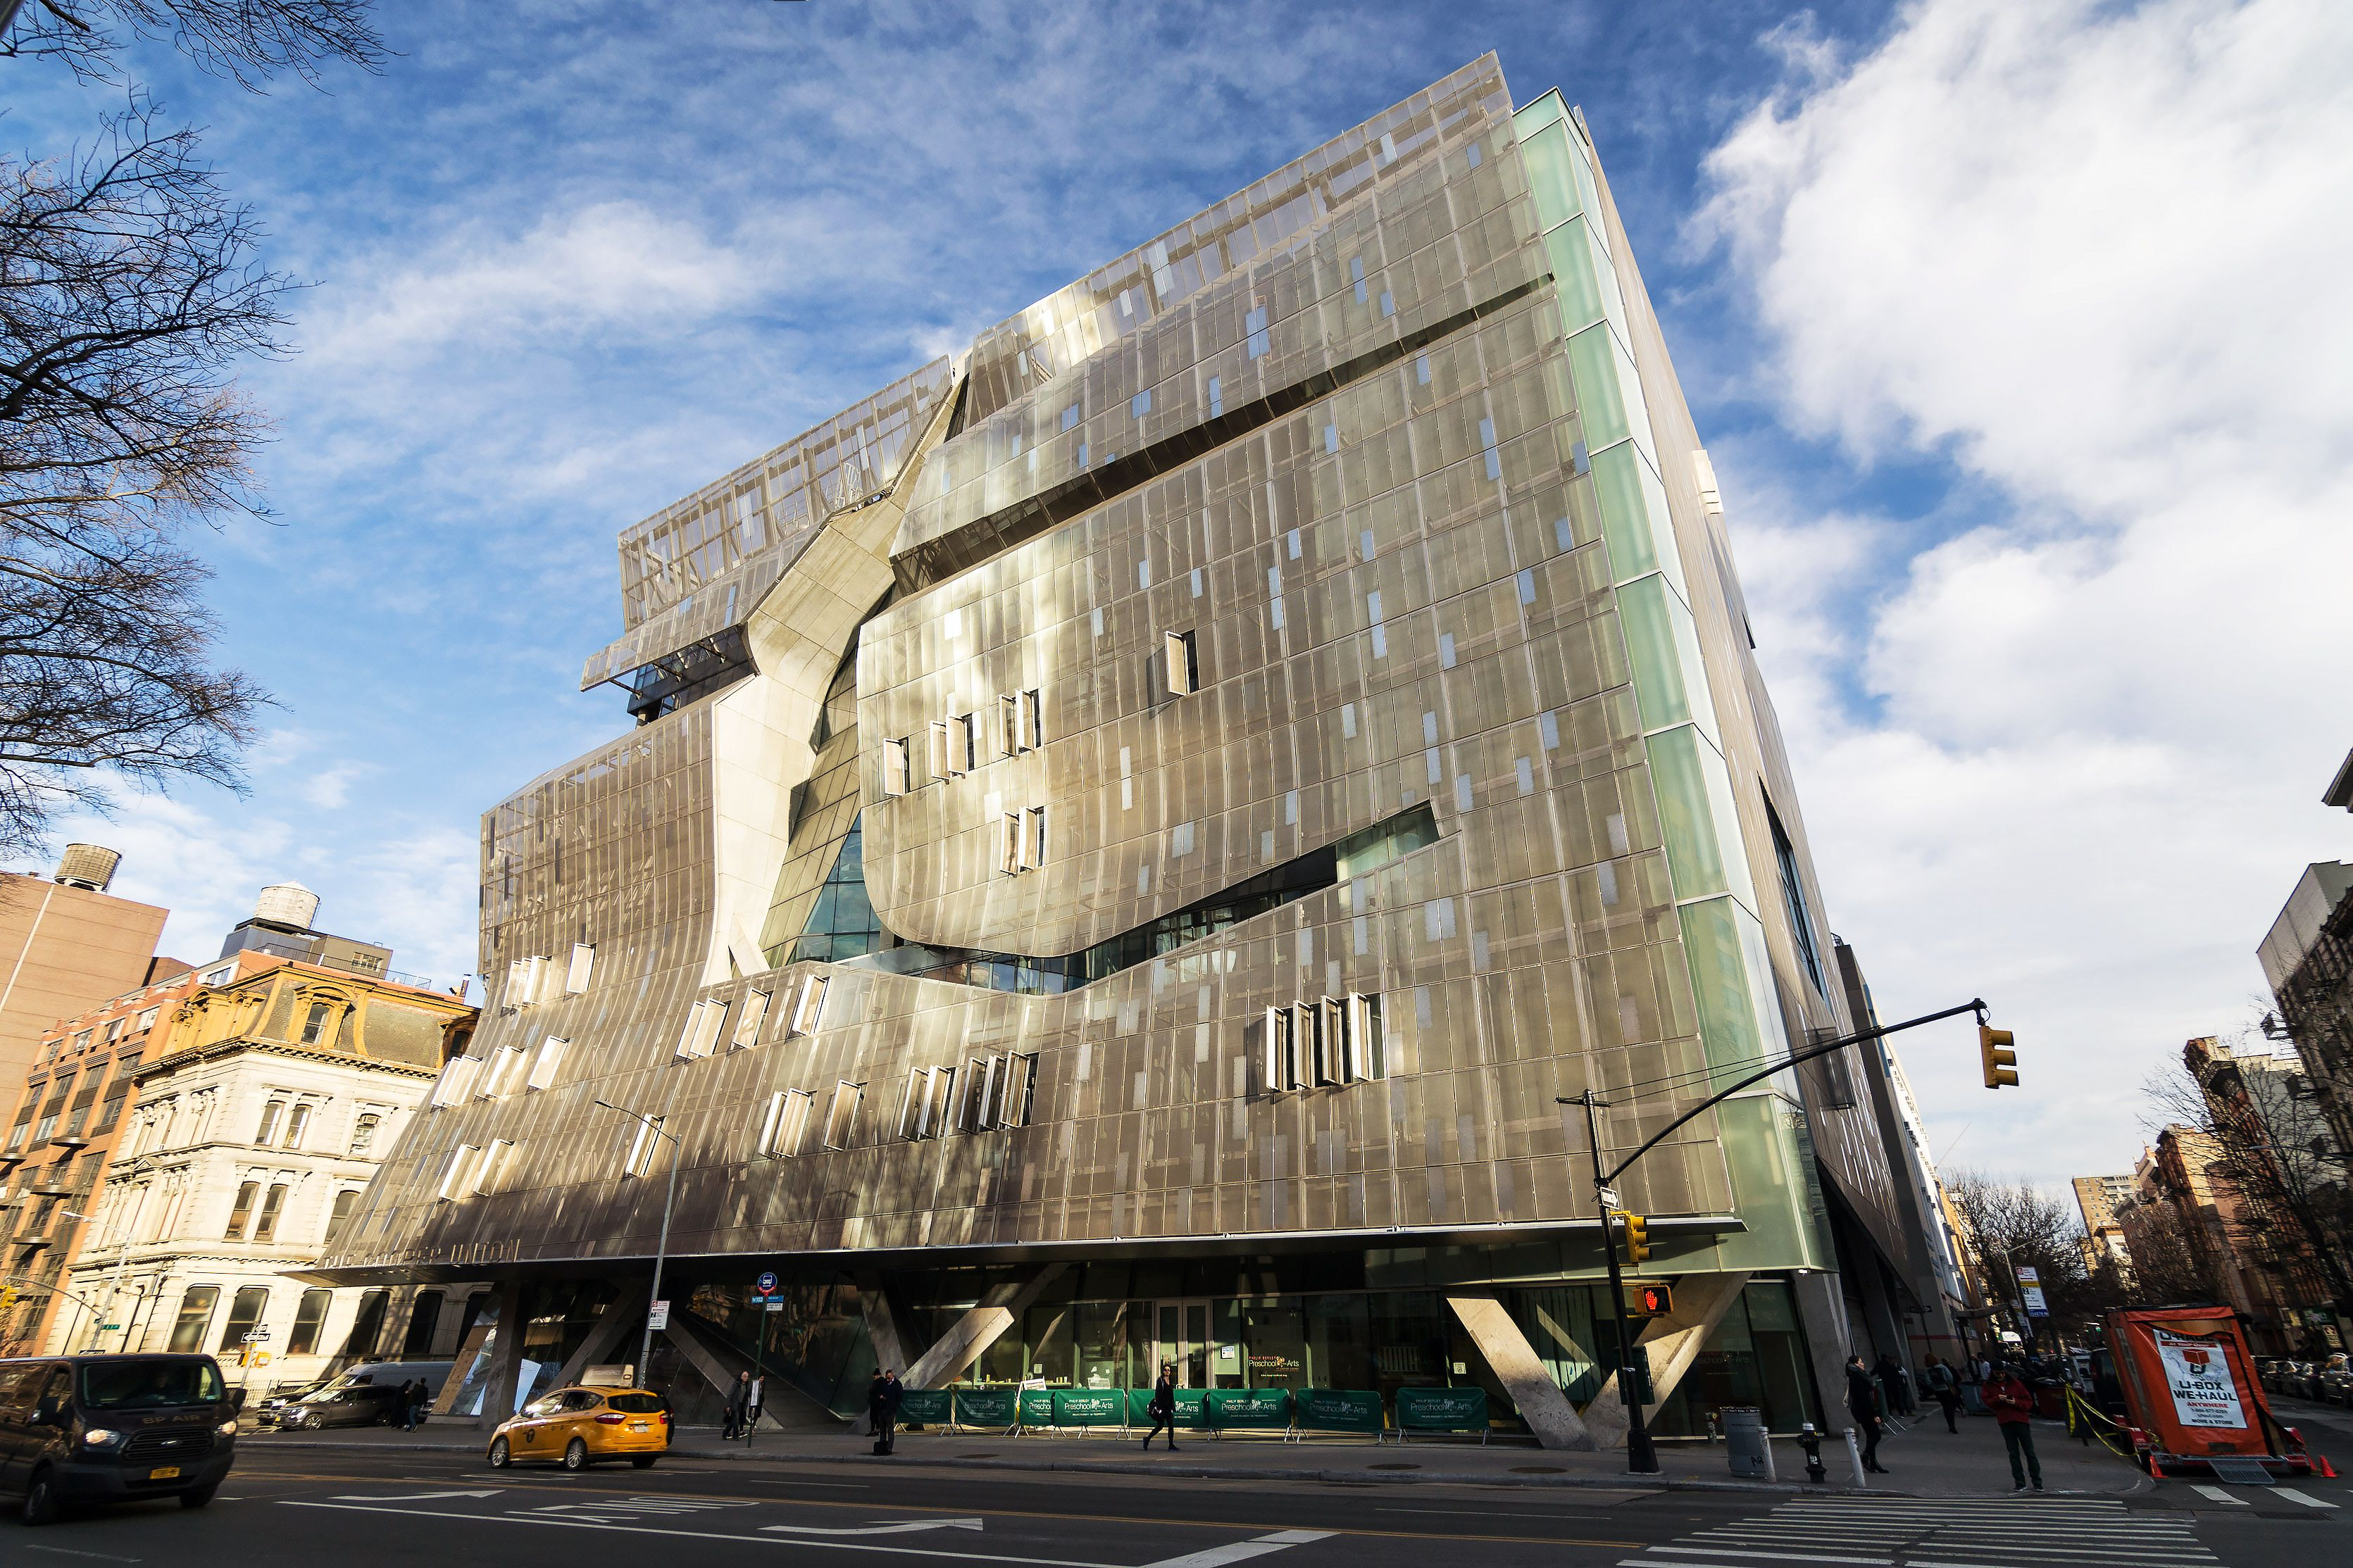 The Cooper Union building